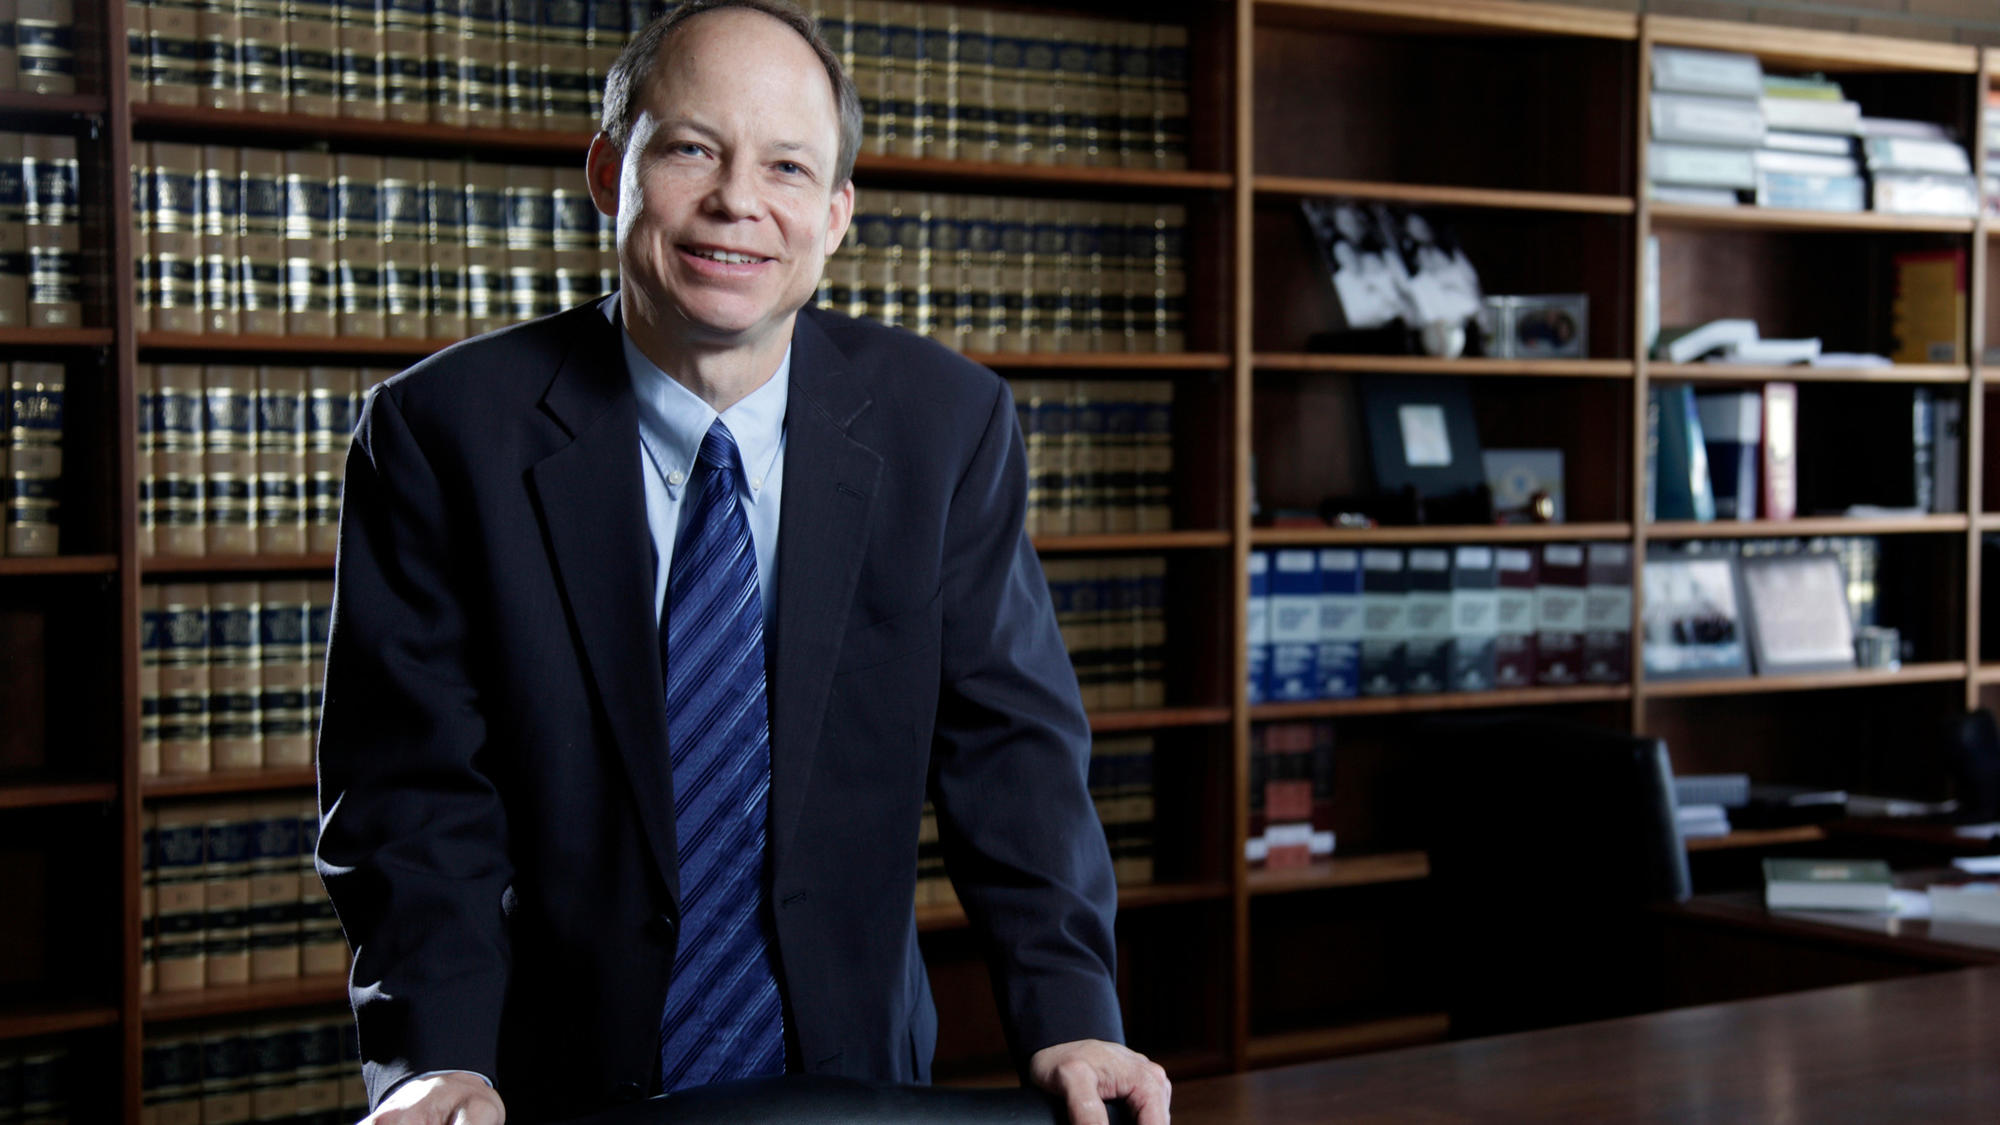 Santa Clara County Superior Court Judge Aaron Persky drew criticism for sentencing former Stanford University swimmer Brock Turner to six months in jail.